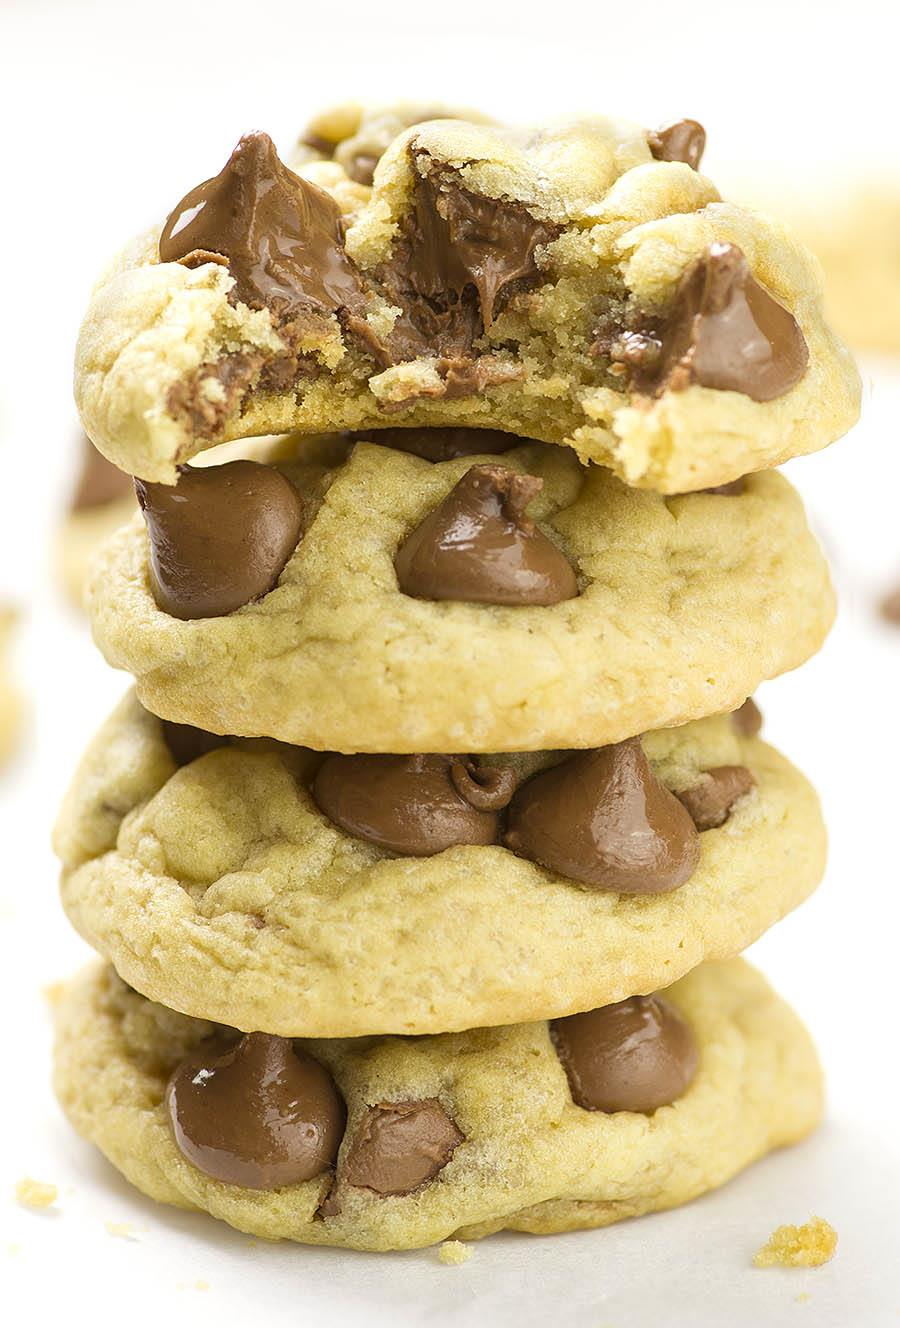 Soft Chocolate Chip Cookies - Moreover, making the best soft chocolate chip cookies from scratch is really simple and easy.